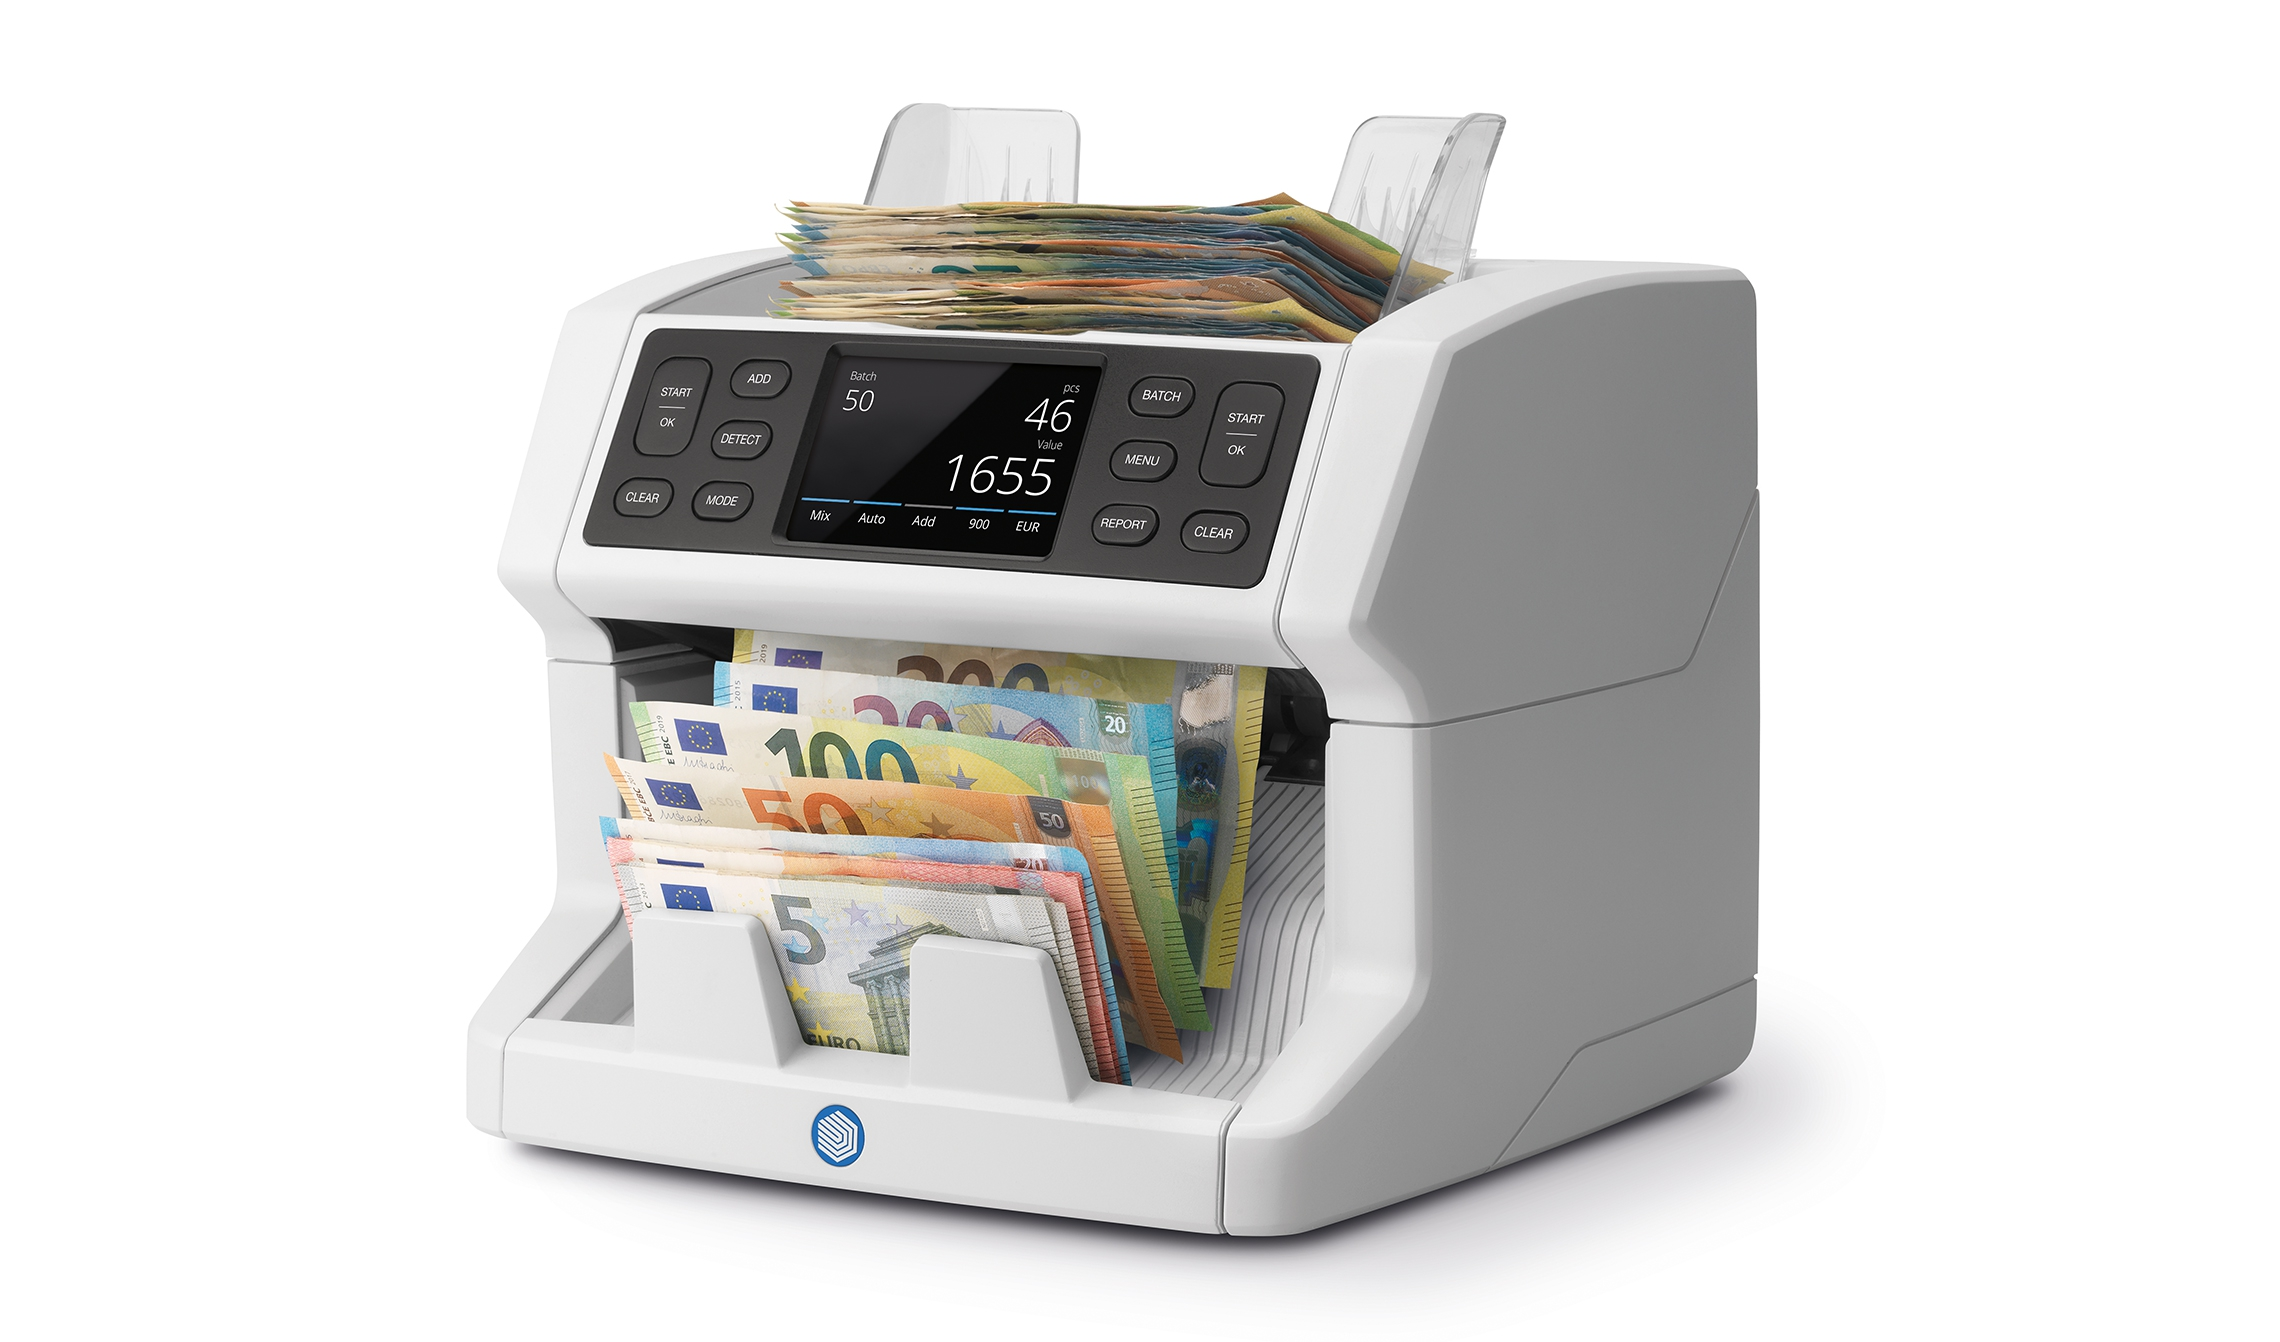 safescan-2865-s-banknote-value-counter